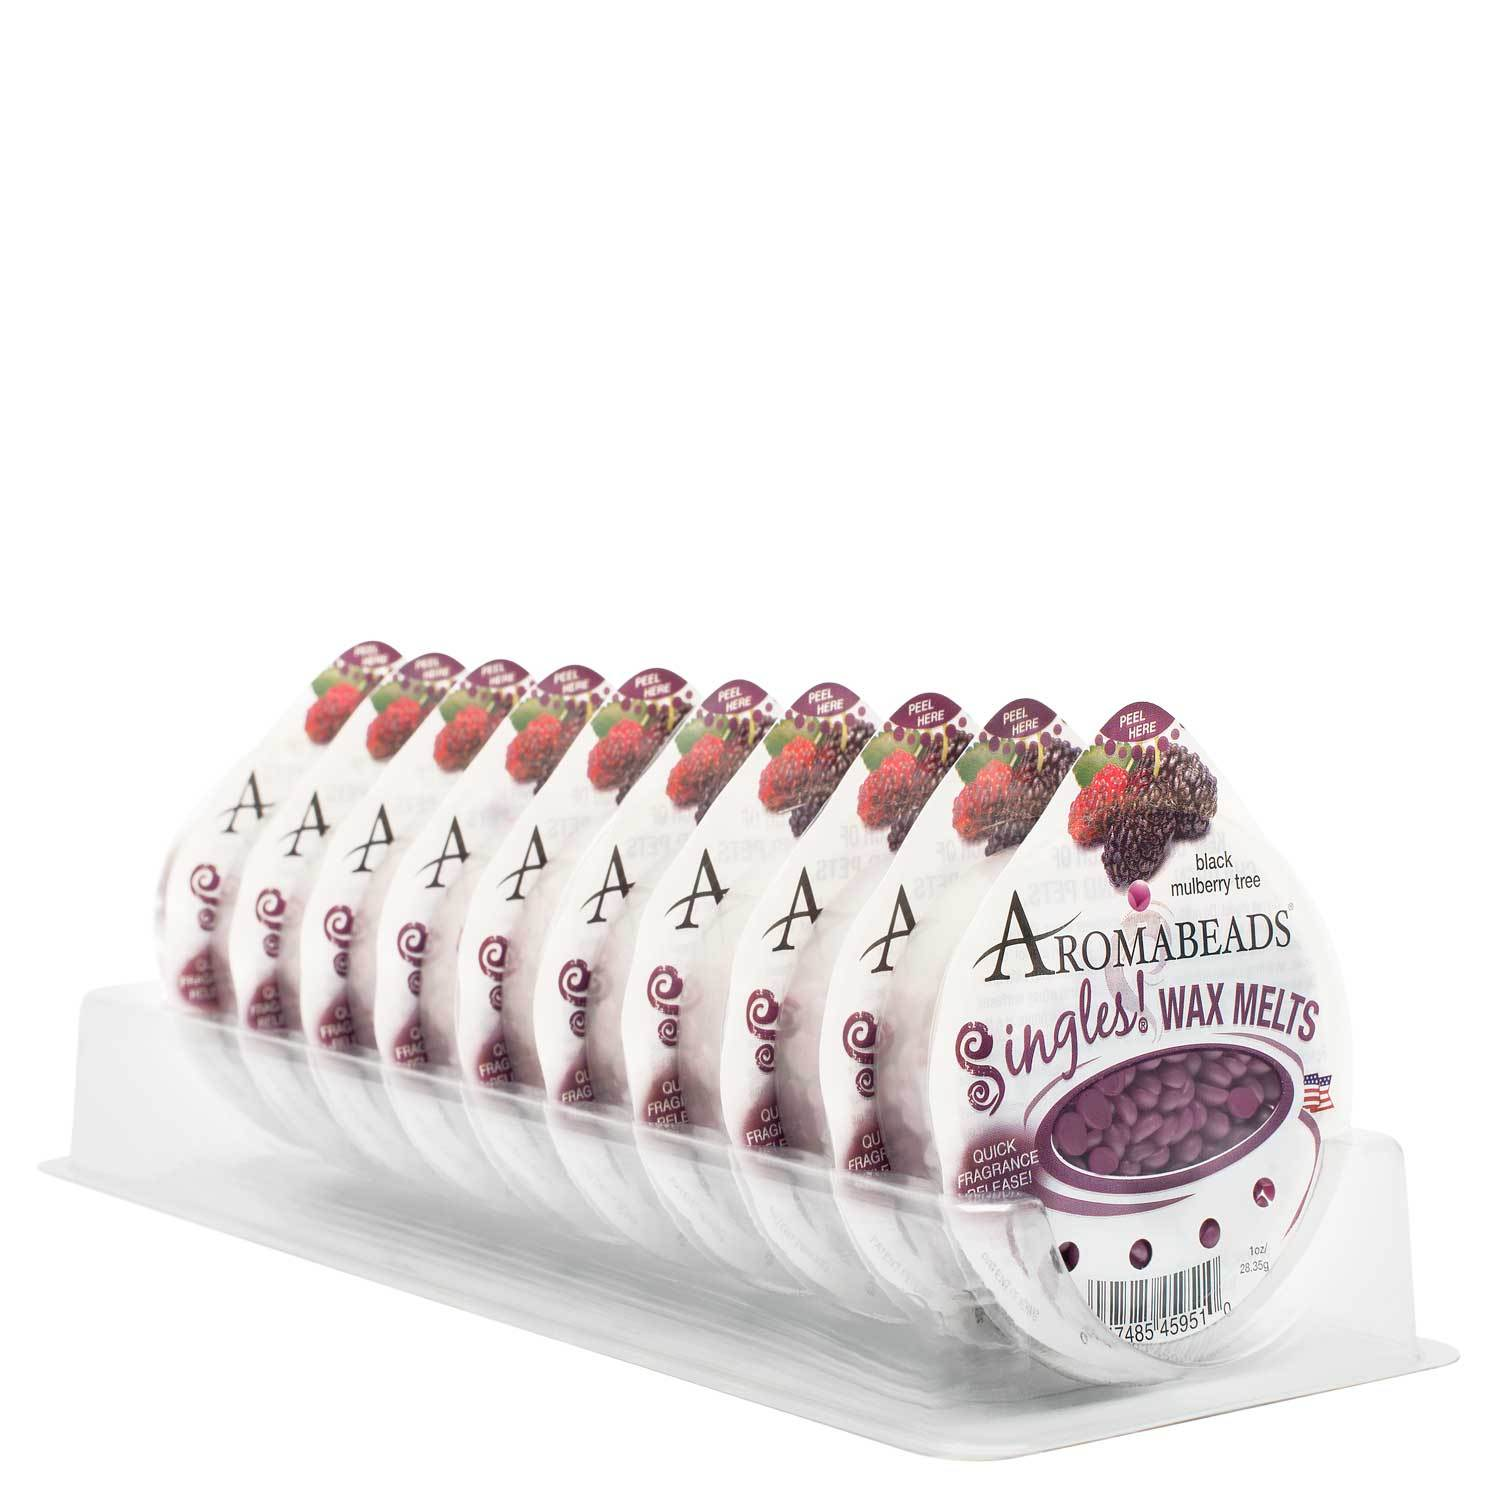 Aromabeads Singles Black Mulberry Tree Wax Melts 10 Pack